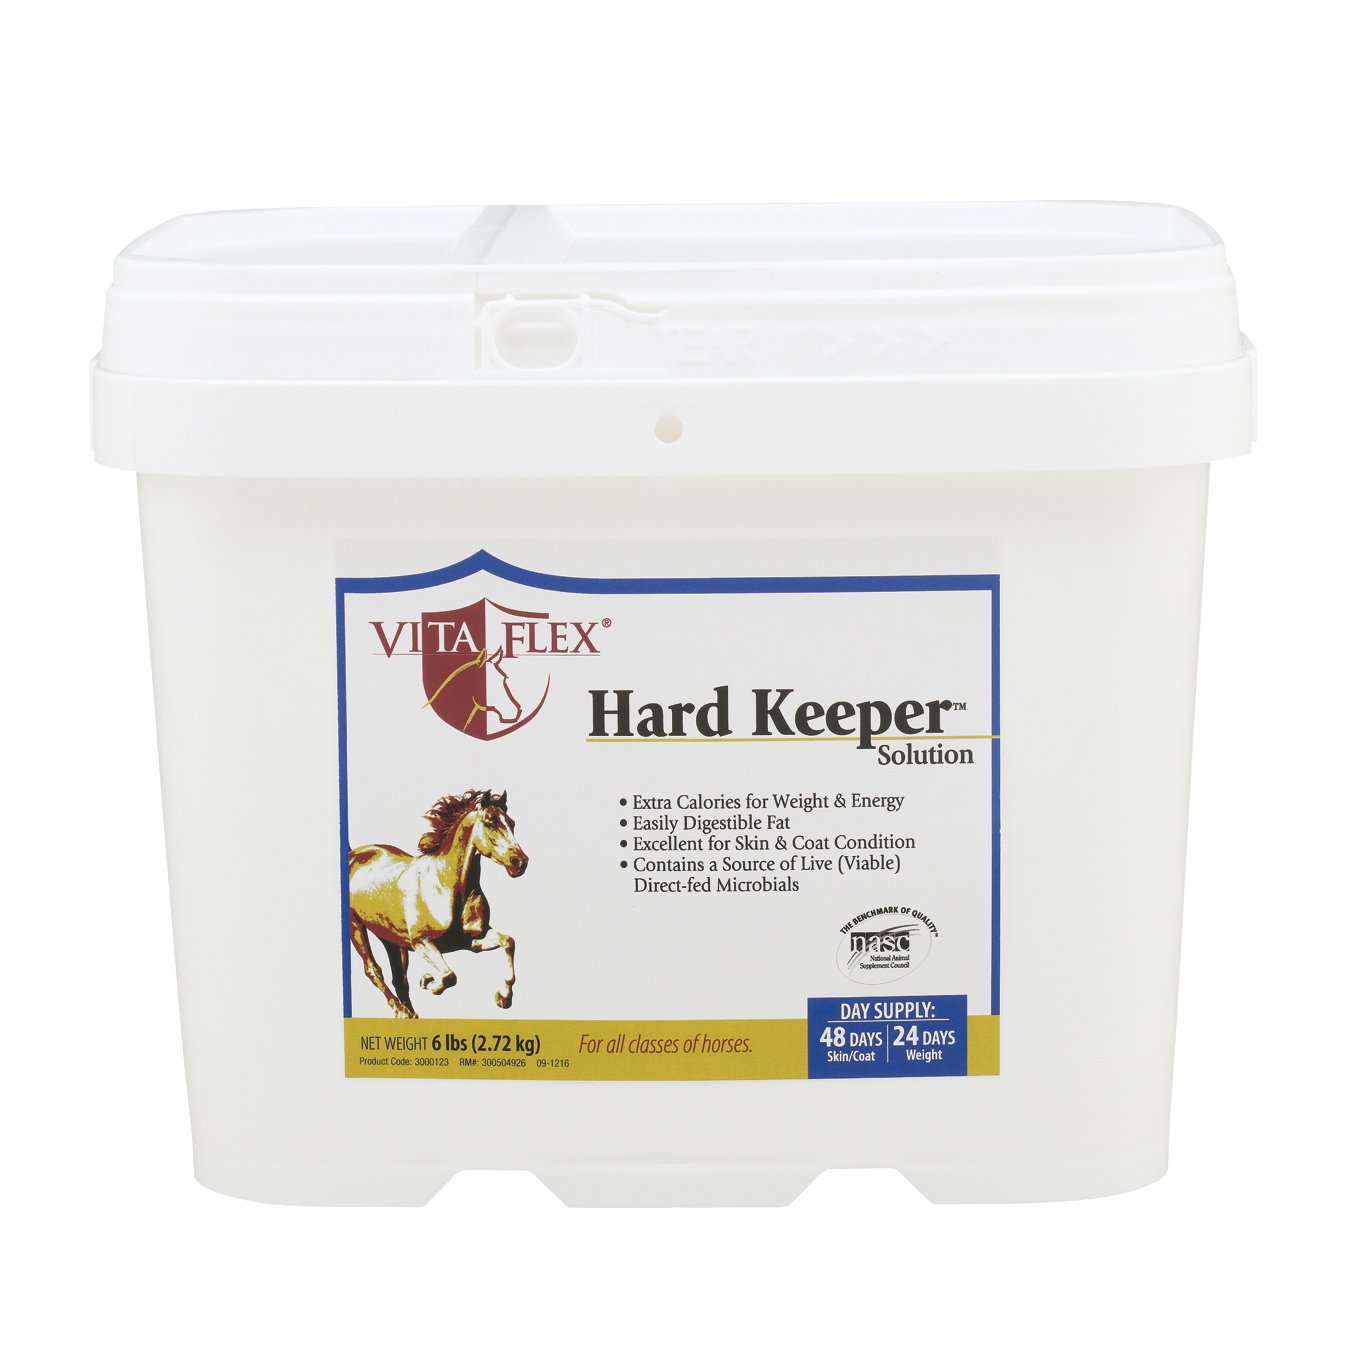 Vita Flex Hard Keeper Solution Horse Supplement, 6 lb.